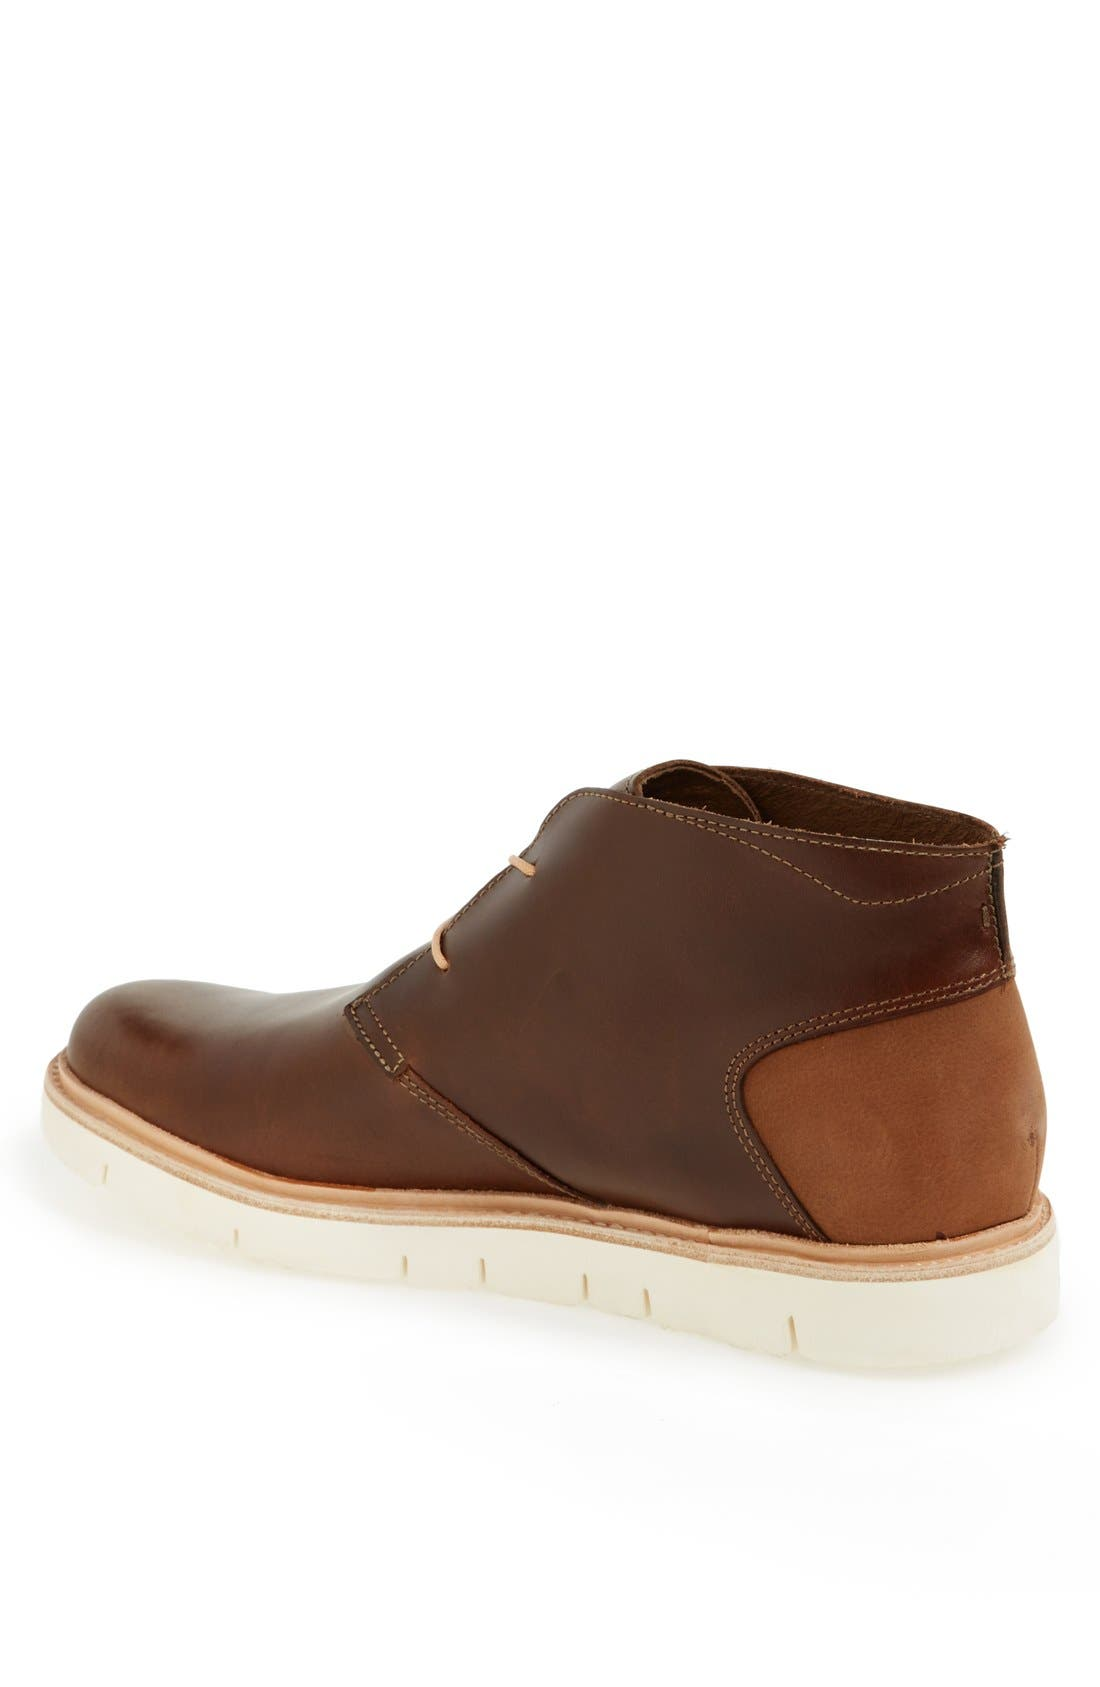 Alternate Image 2  - Tsubo 'Halian' Chukka Boot